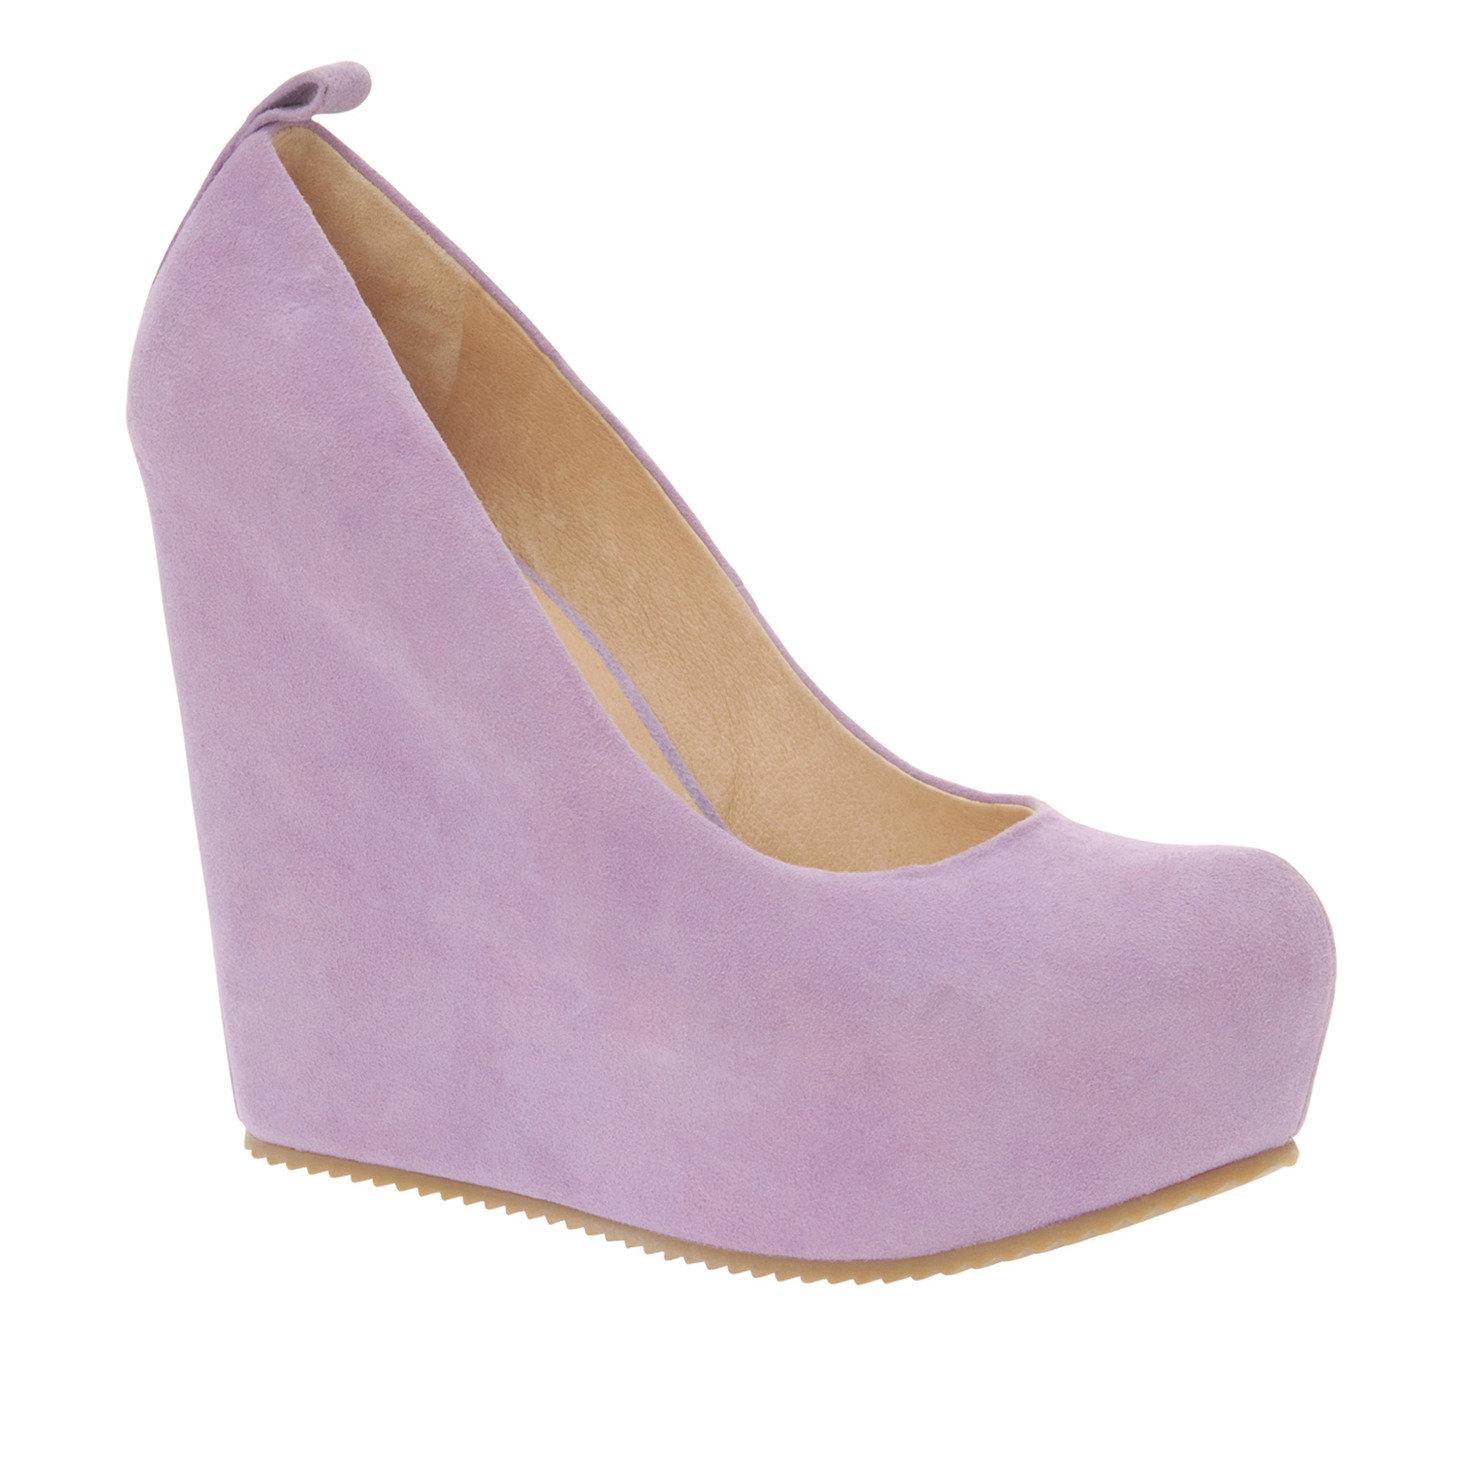 calcagni s wedges shoes for sale from aldo my